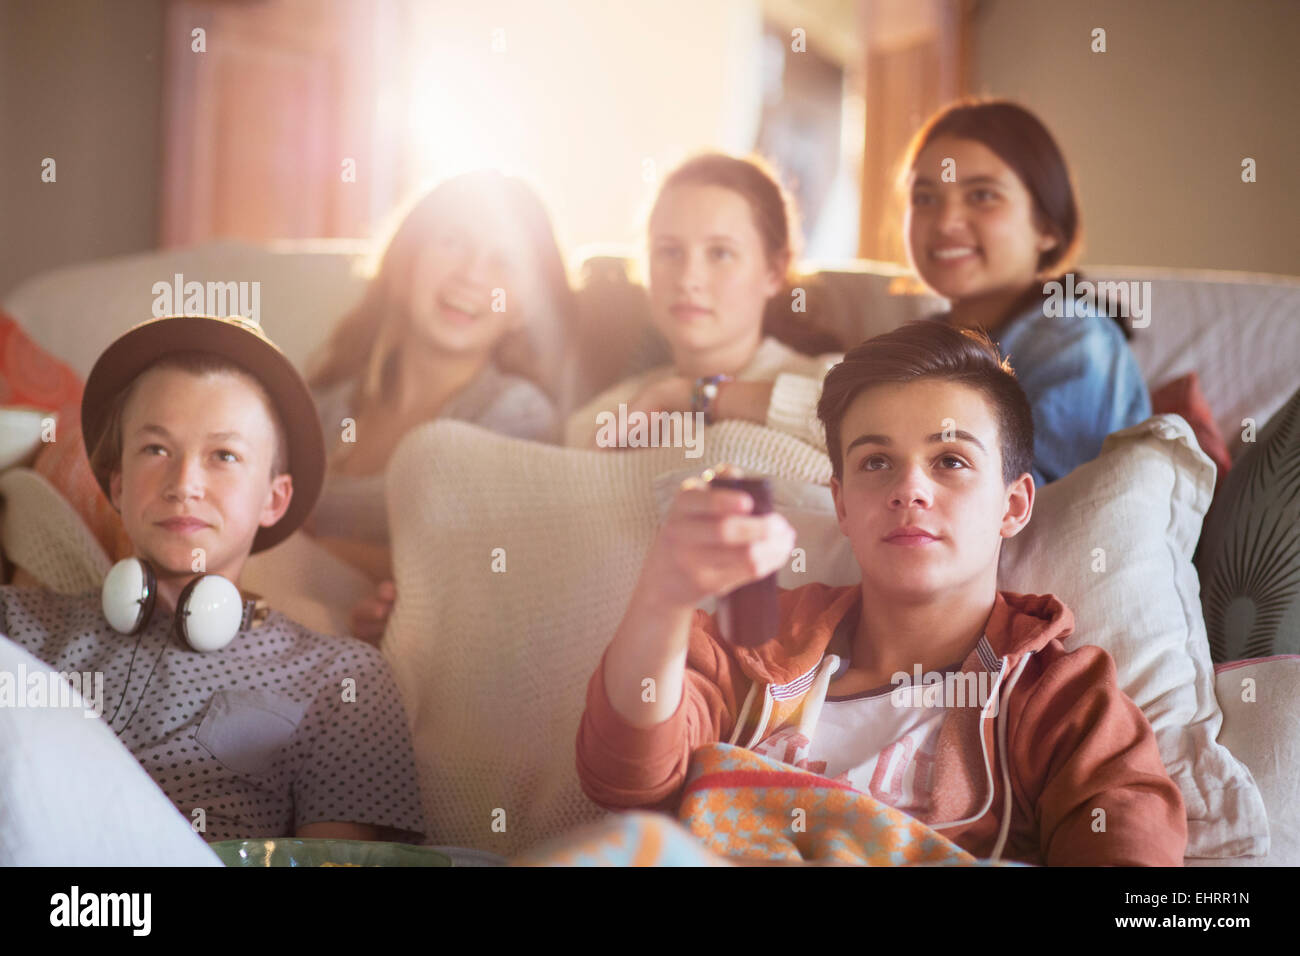 Bettsofa Jugend Group Of Teenagers Watching Tv On Sofa Together Stock Photo